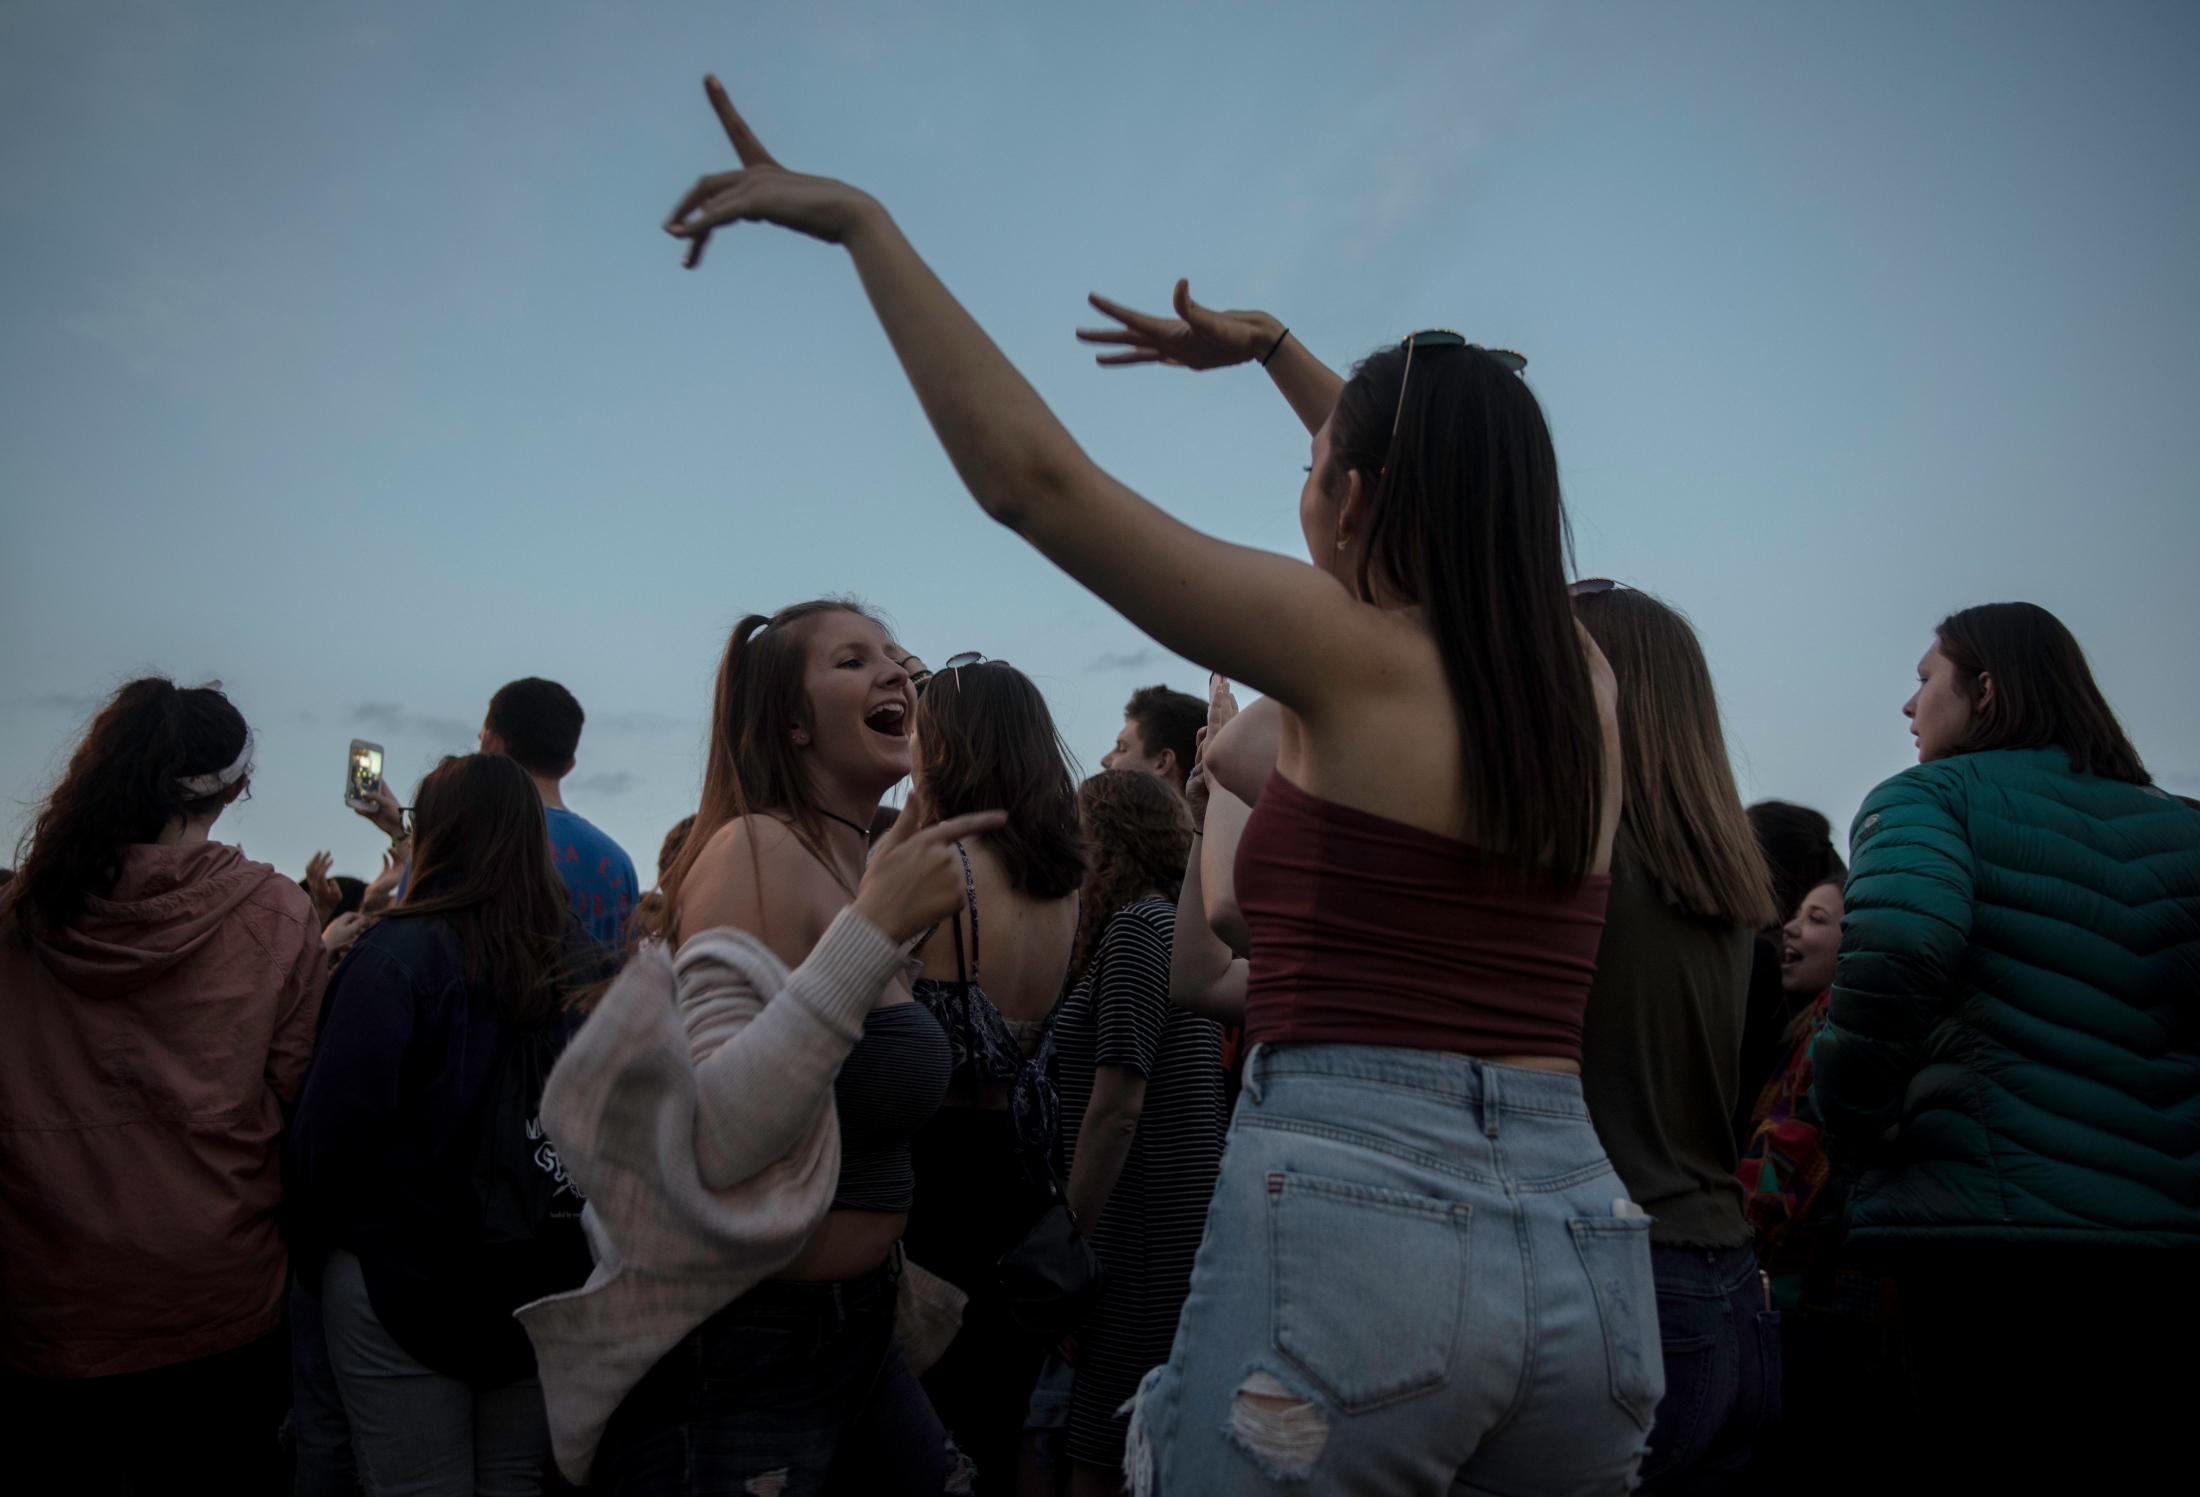 Two girls dance with the music  On Concert at Penn State University, in State College, PA, on April 27, 2018.